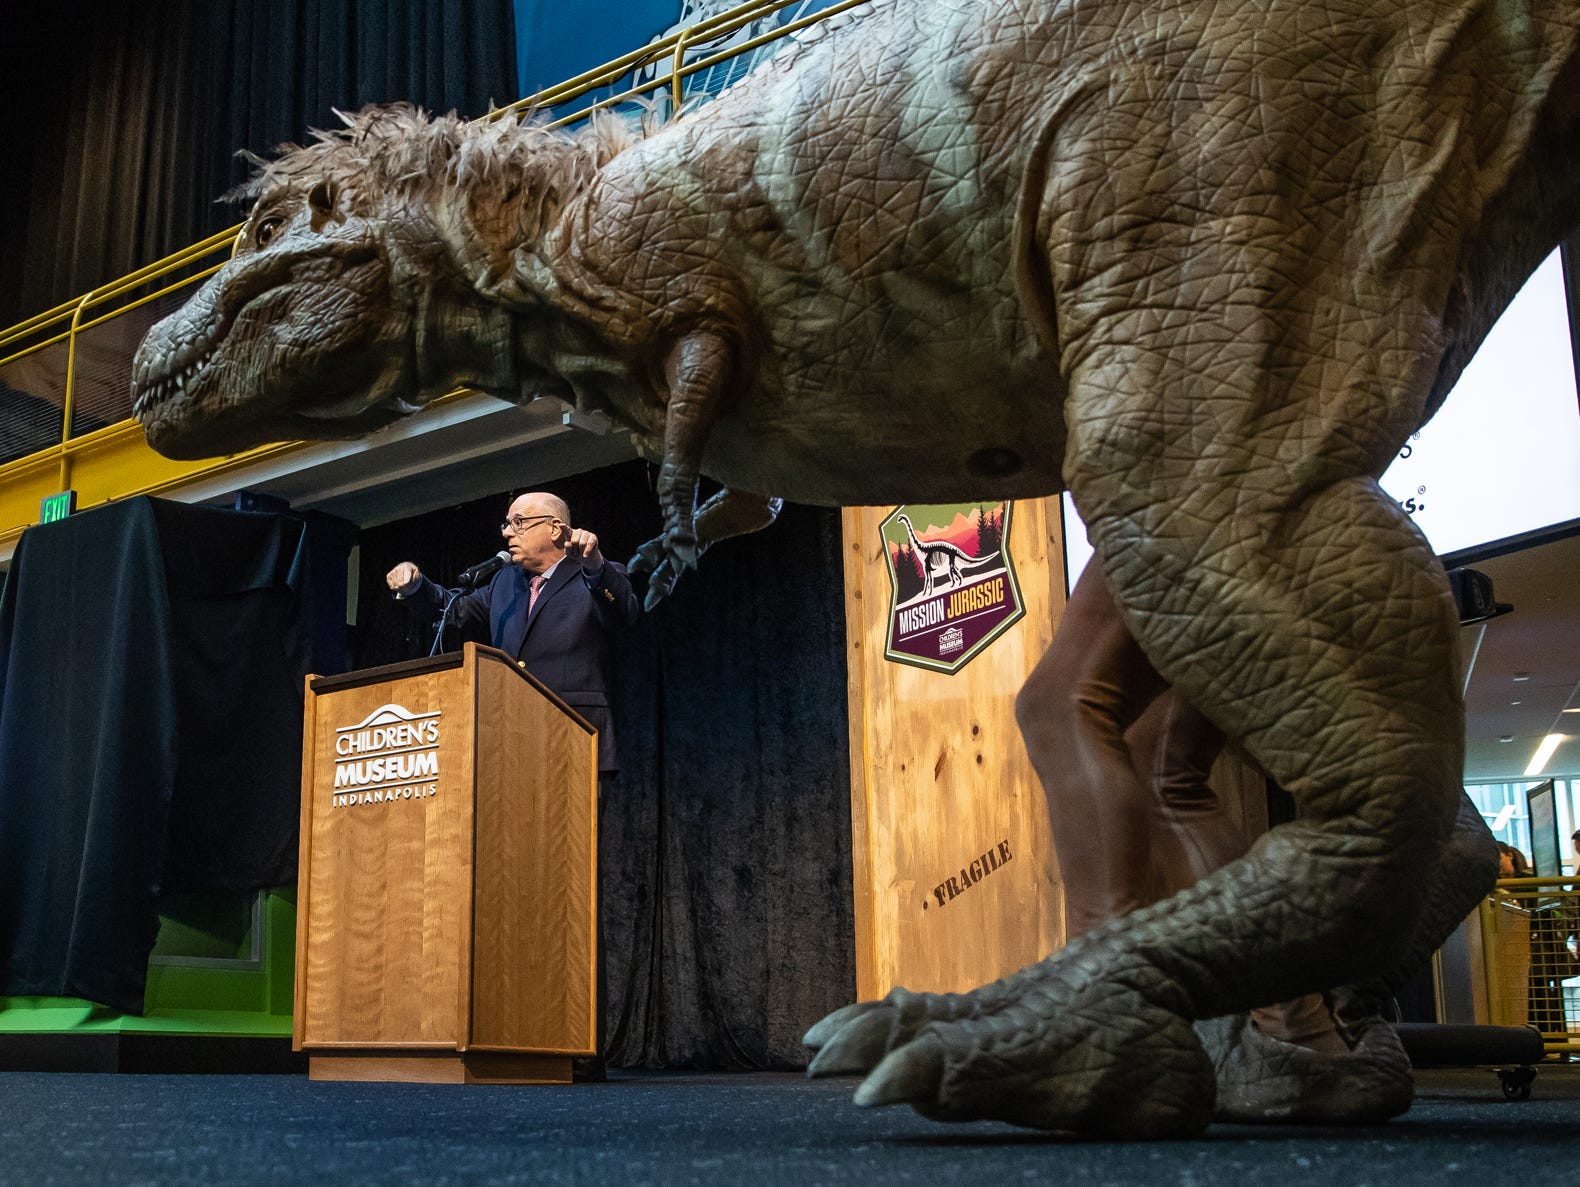 Dr. Jeff Patchen, president and CEO of The Children's Museum of Indianapolis, introduces Bucky, a Tyrannosaurus Rex puppet, during a press conference announcing Mission Jurassic at the Children's Museum of Indianapolis on Monday, March 25, 2019. The Children's Museum of Indianapolis, who will serve as Mission Jurassic leader, alongside The Natural History Museum, Naturalis Biodiversity Center and the University of Manchester, will work together to excavate the fossil-rich plot of land in northern Wyoming where the femur was found.